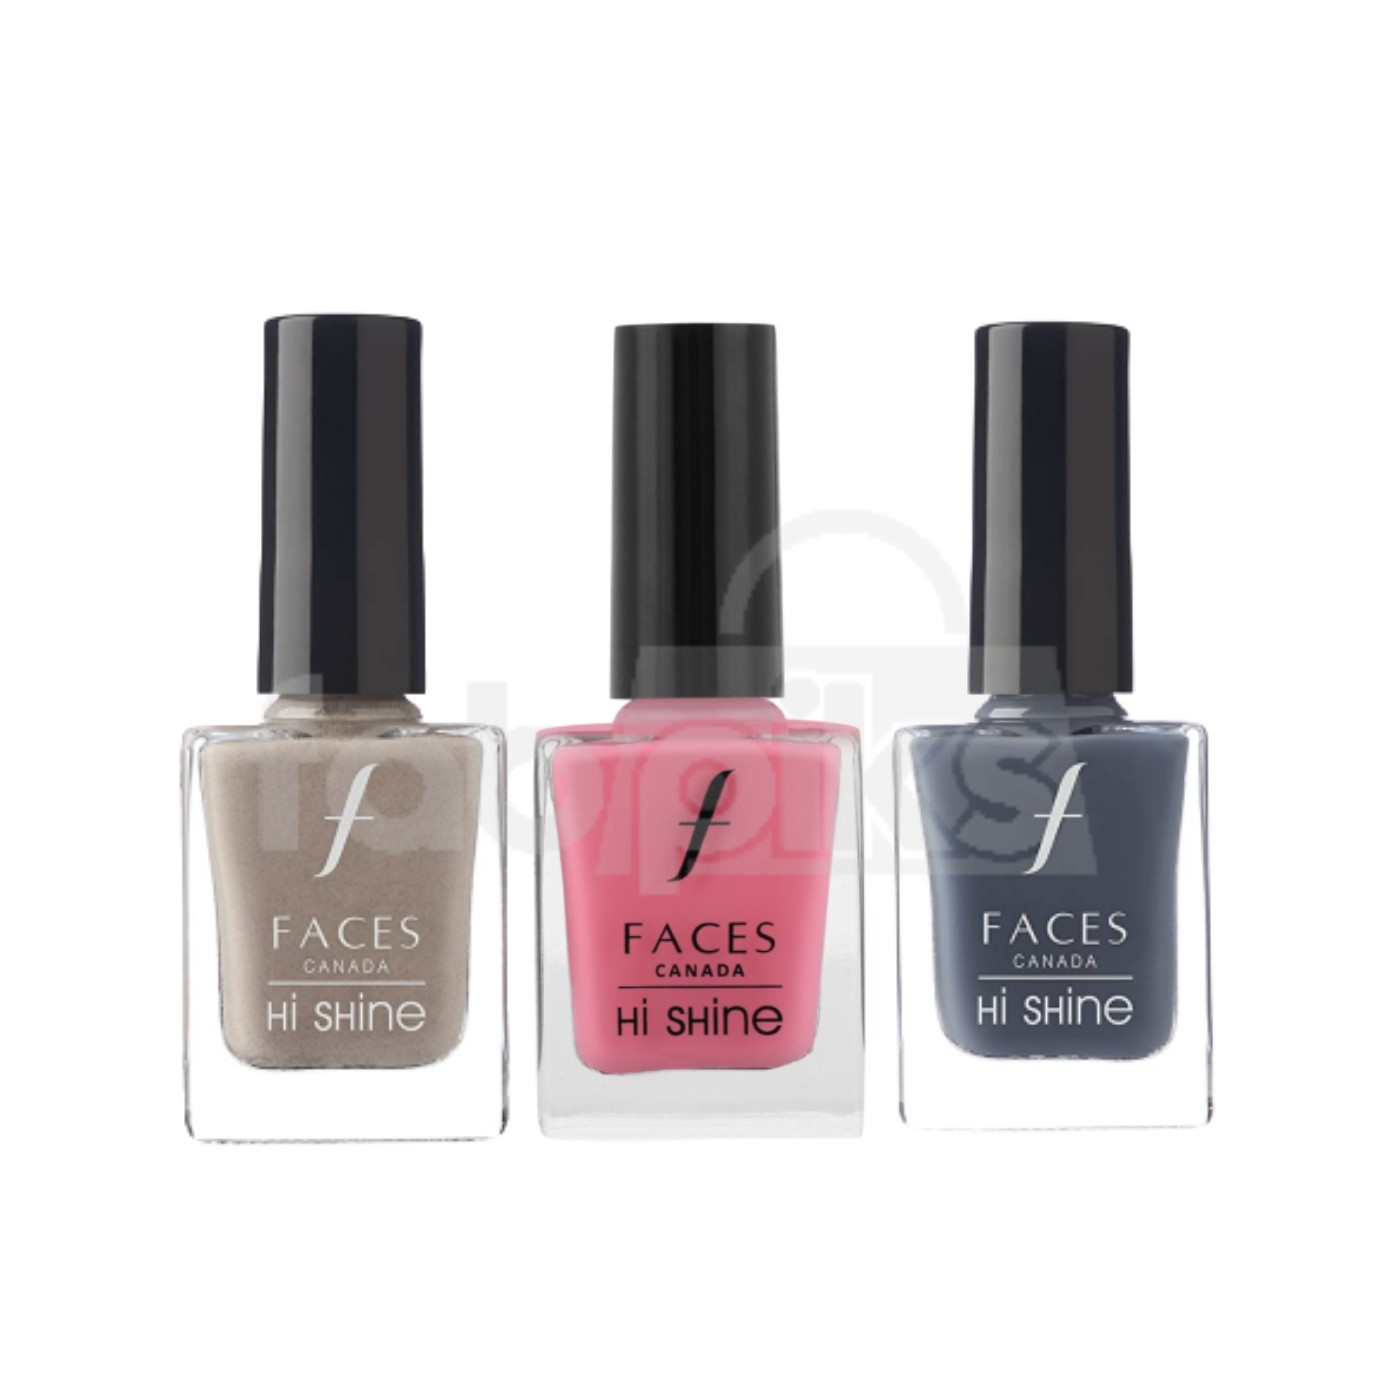 Hi Shine Nail Enamel - Assorted Shades set of 3  | MRP Rs. 597